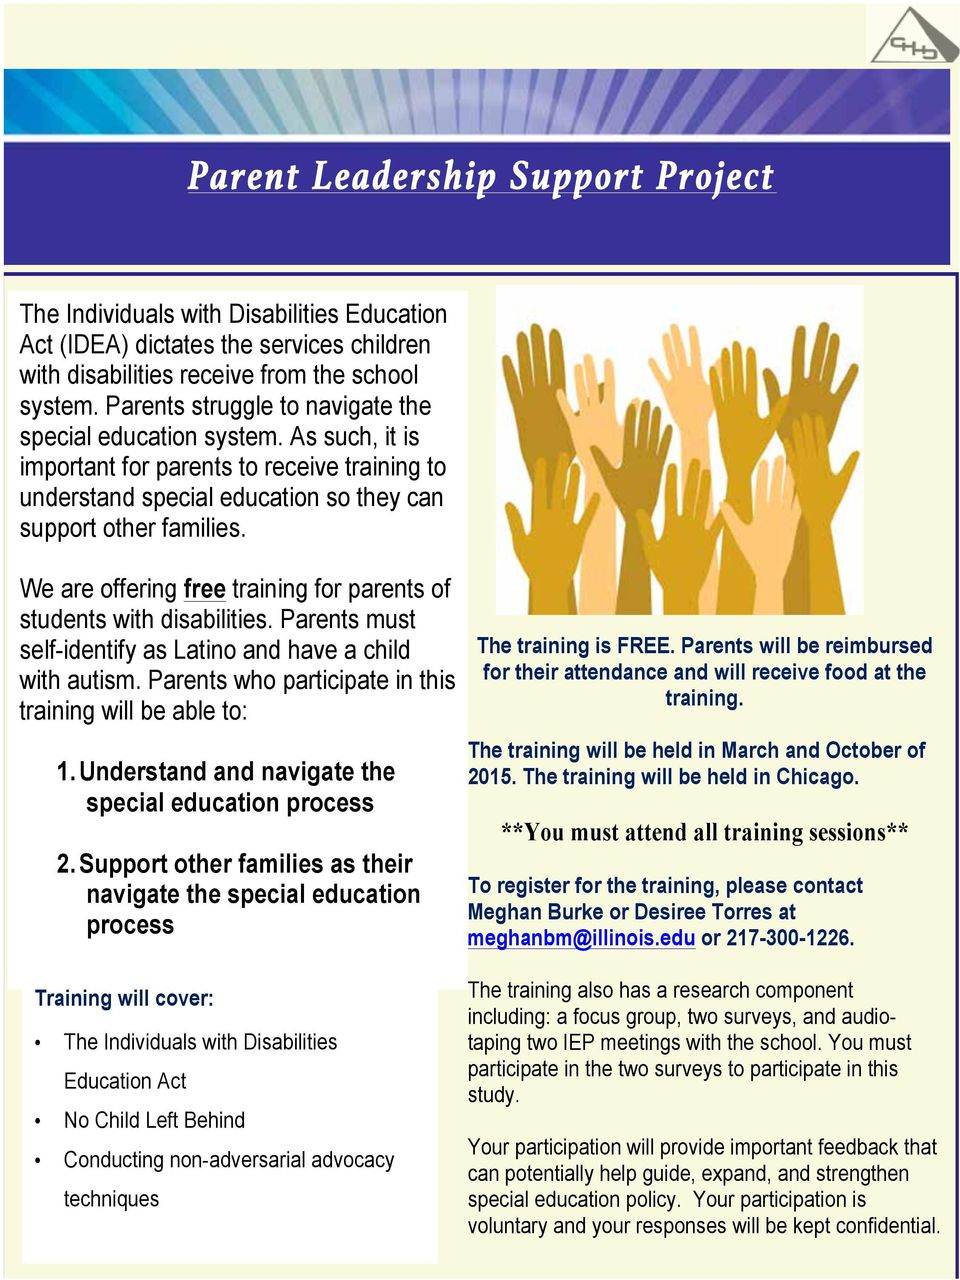 We are offering free training for parents of students with disabilities. Parents must self-identify as Latino and have a child with autism. Parents who participate in this training will be able to: 1.